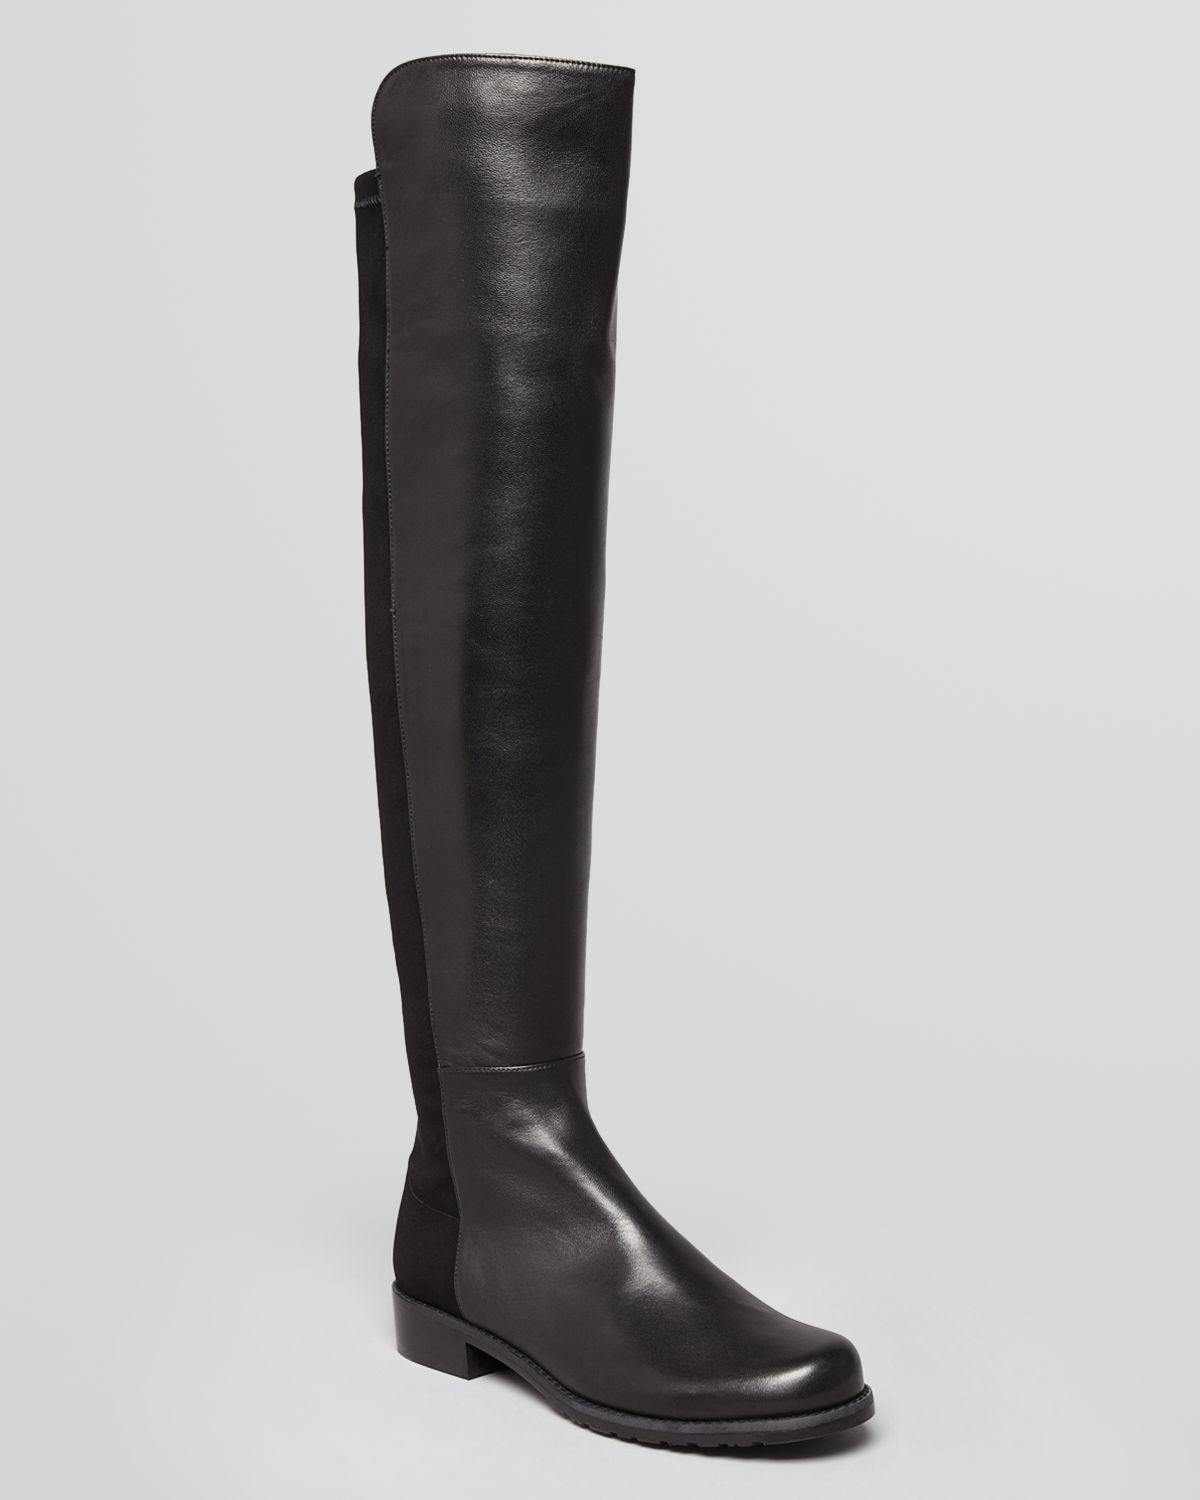 Weitzman Boots 5050 Over The Knee Bloomingdales . Bloomingdales Leather Sofa  57fbb4481bf41jpg